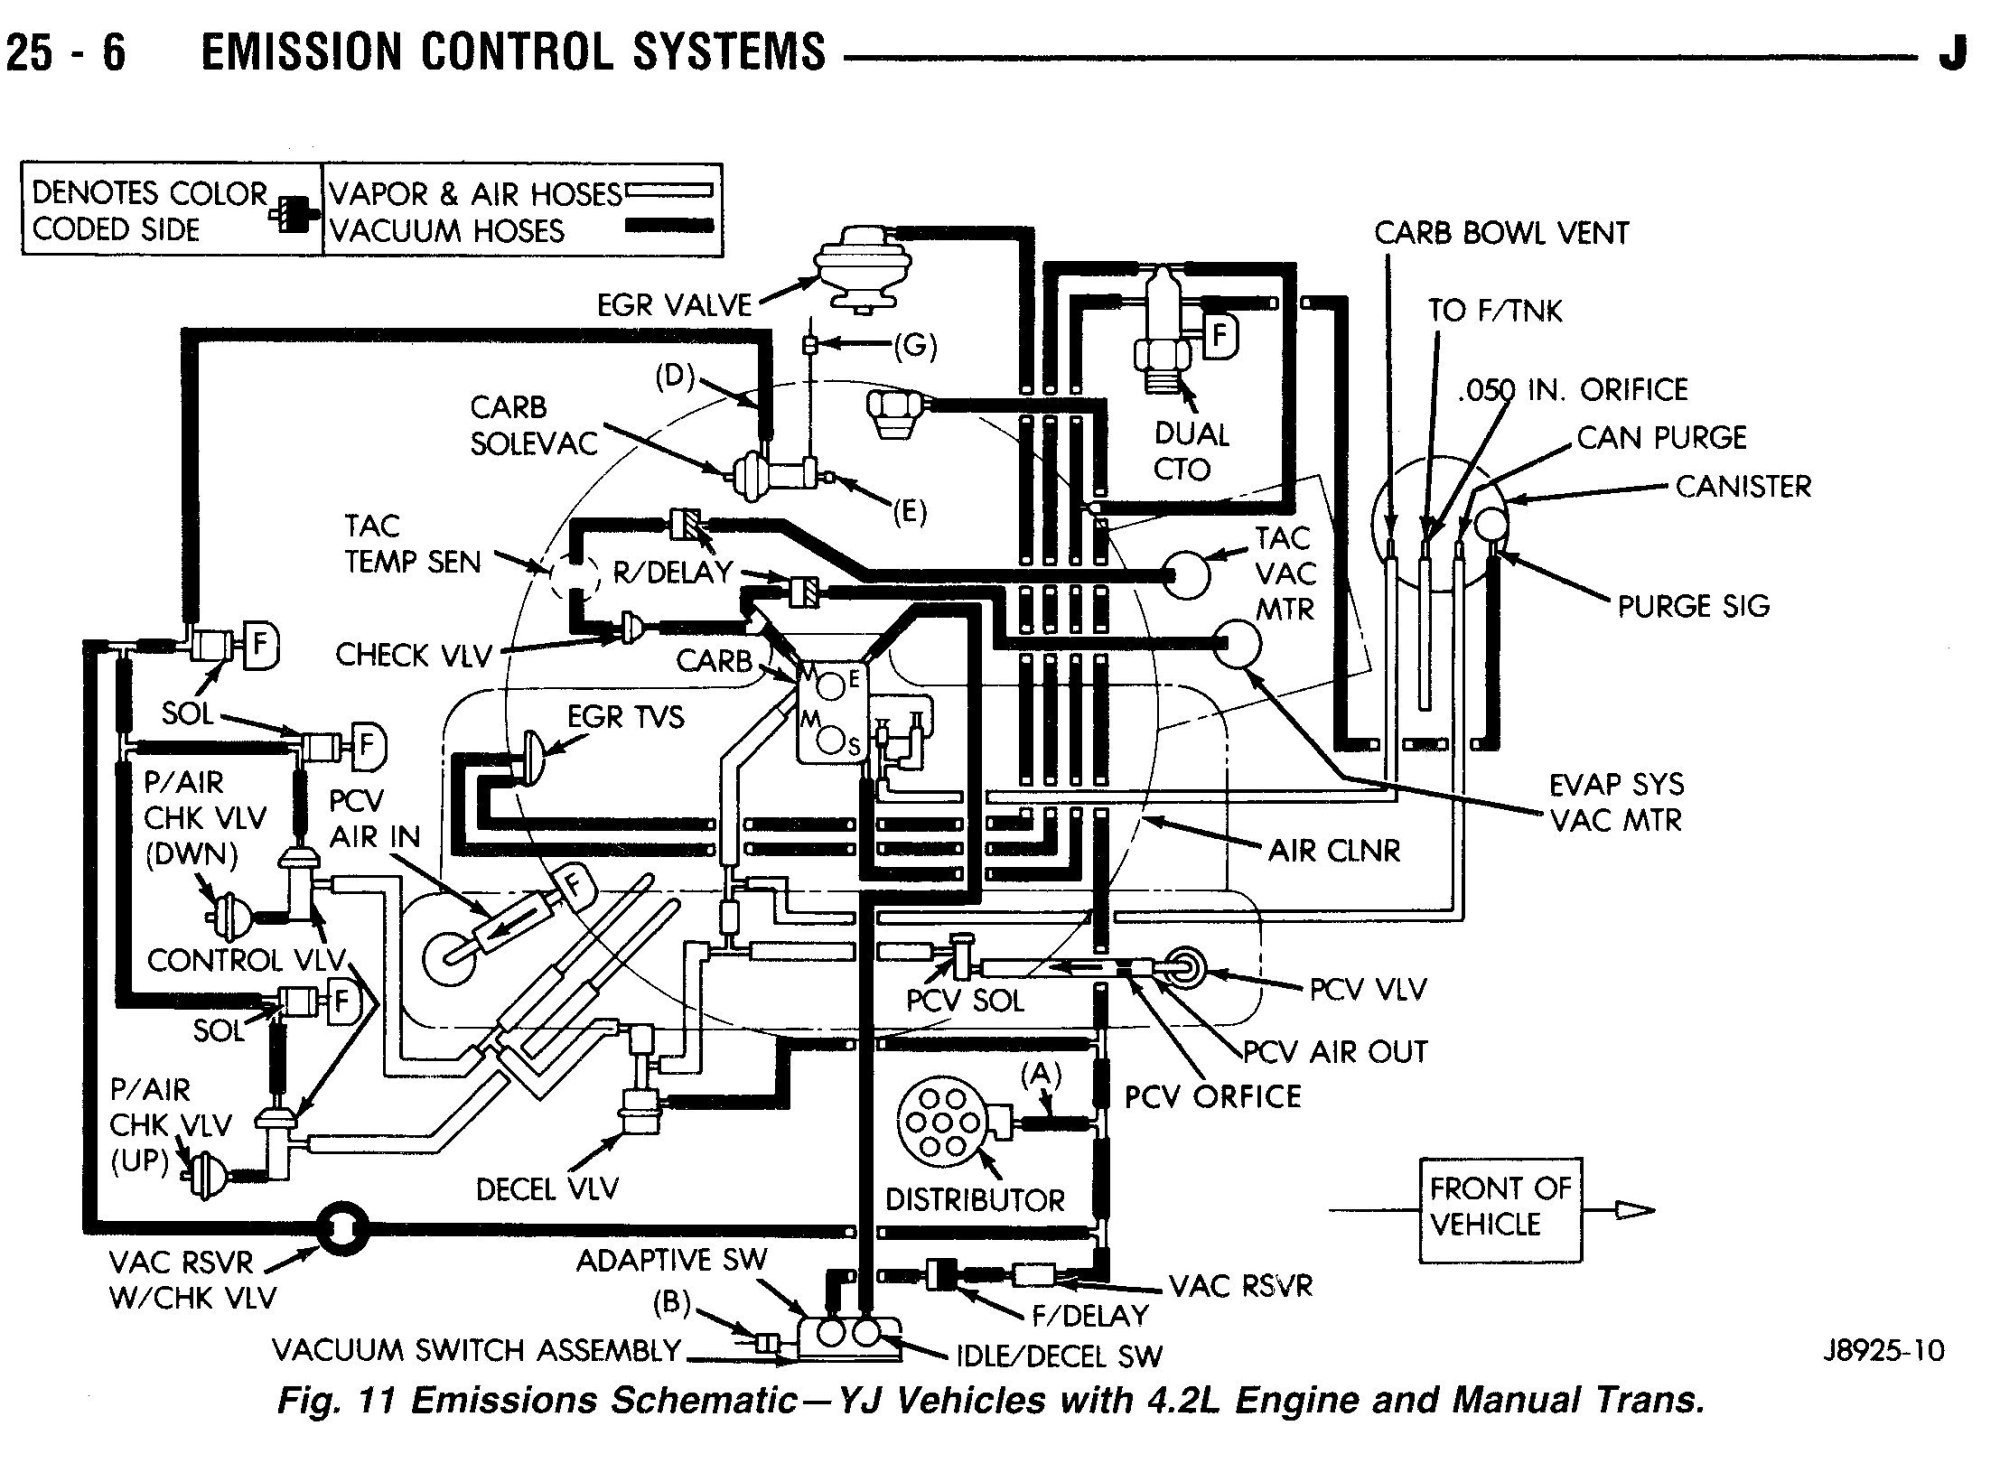 hight resolution of wiring harness diagram for 1990 jeep yj wiring diagram third level jeep wrangler vacuum lines diagram 1990 jeep wrangler wiring diagram